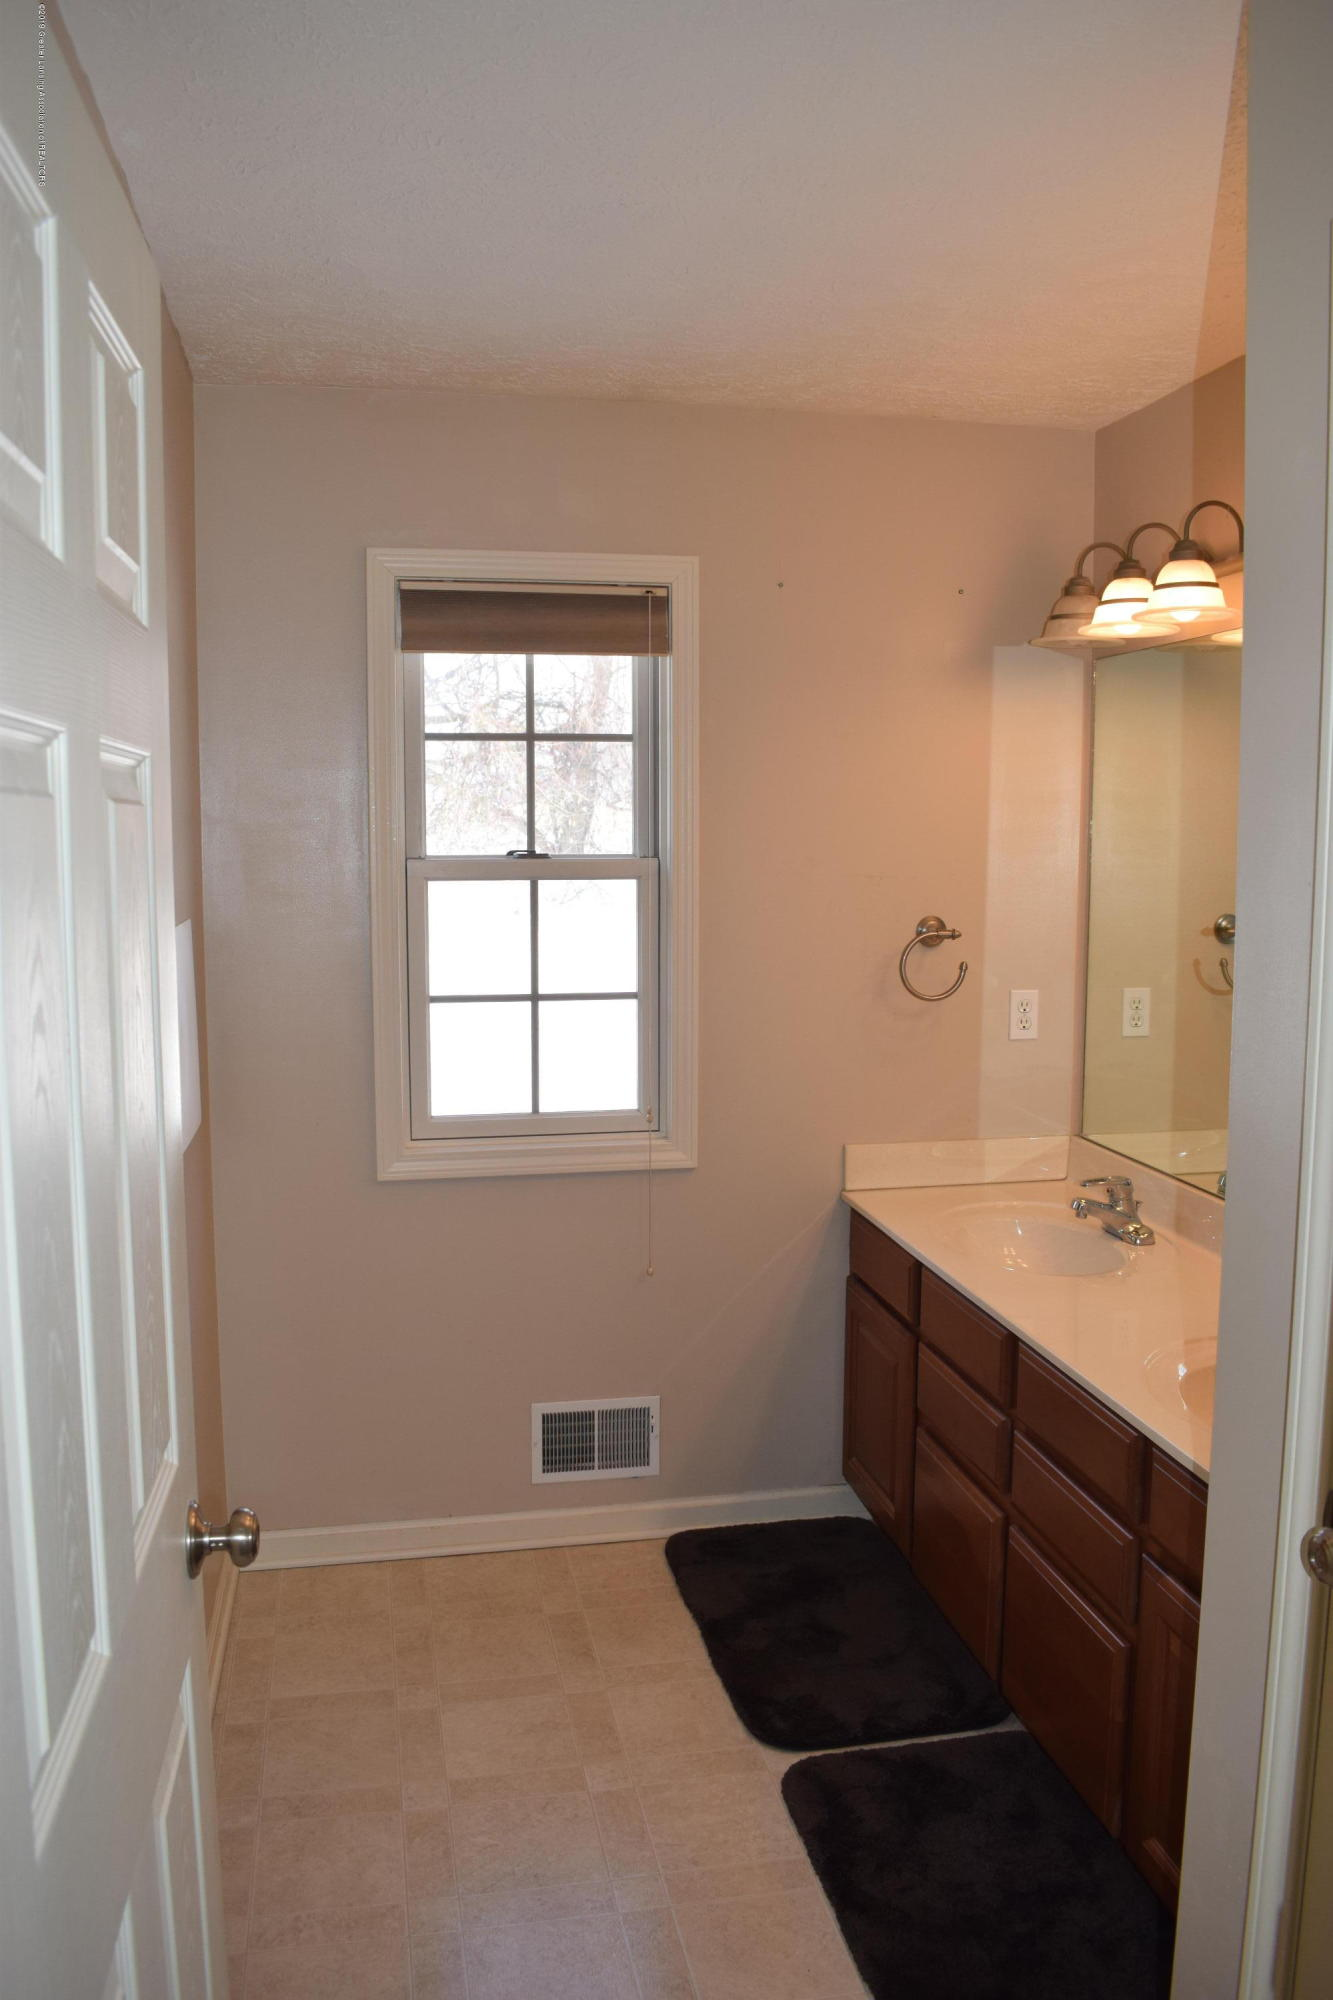 12930 Chartreuse Dr - 14 - 15